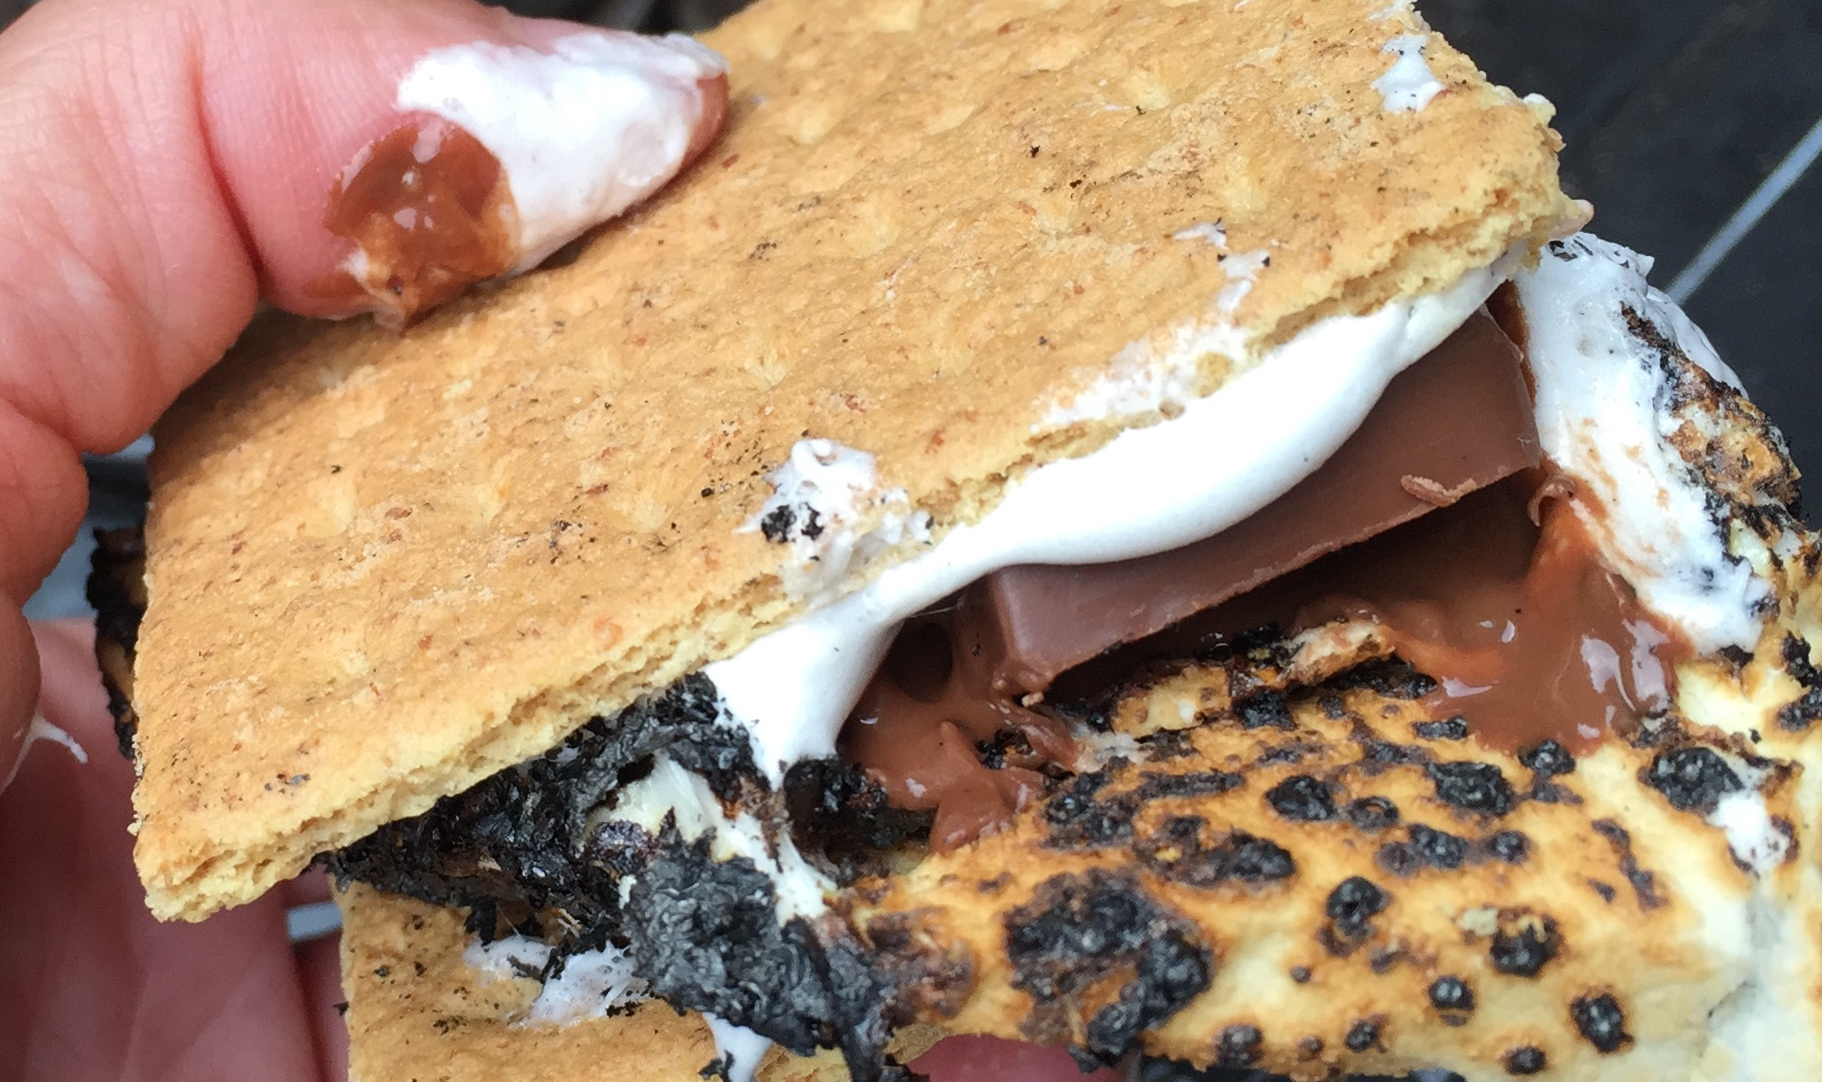 The Superior S'more – Find Out How